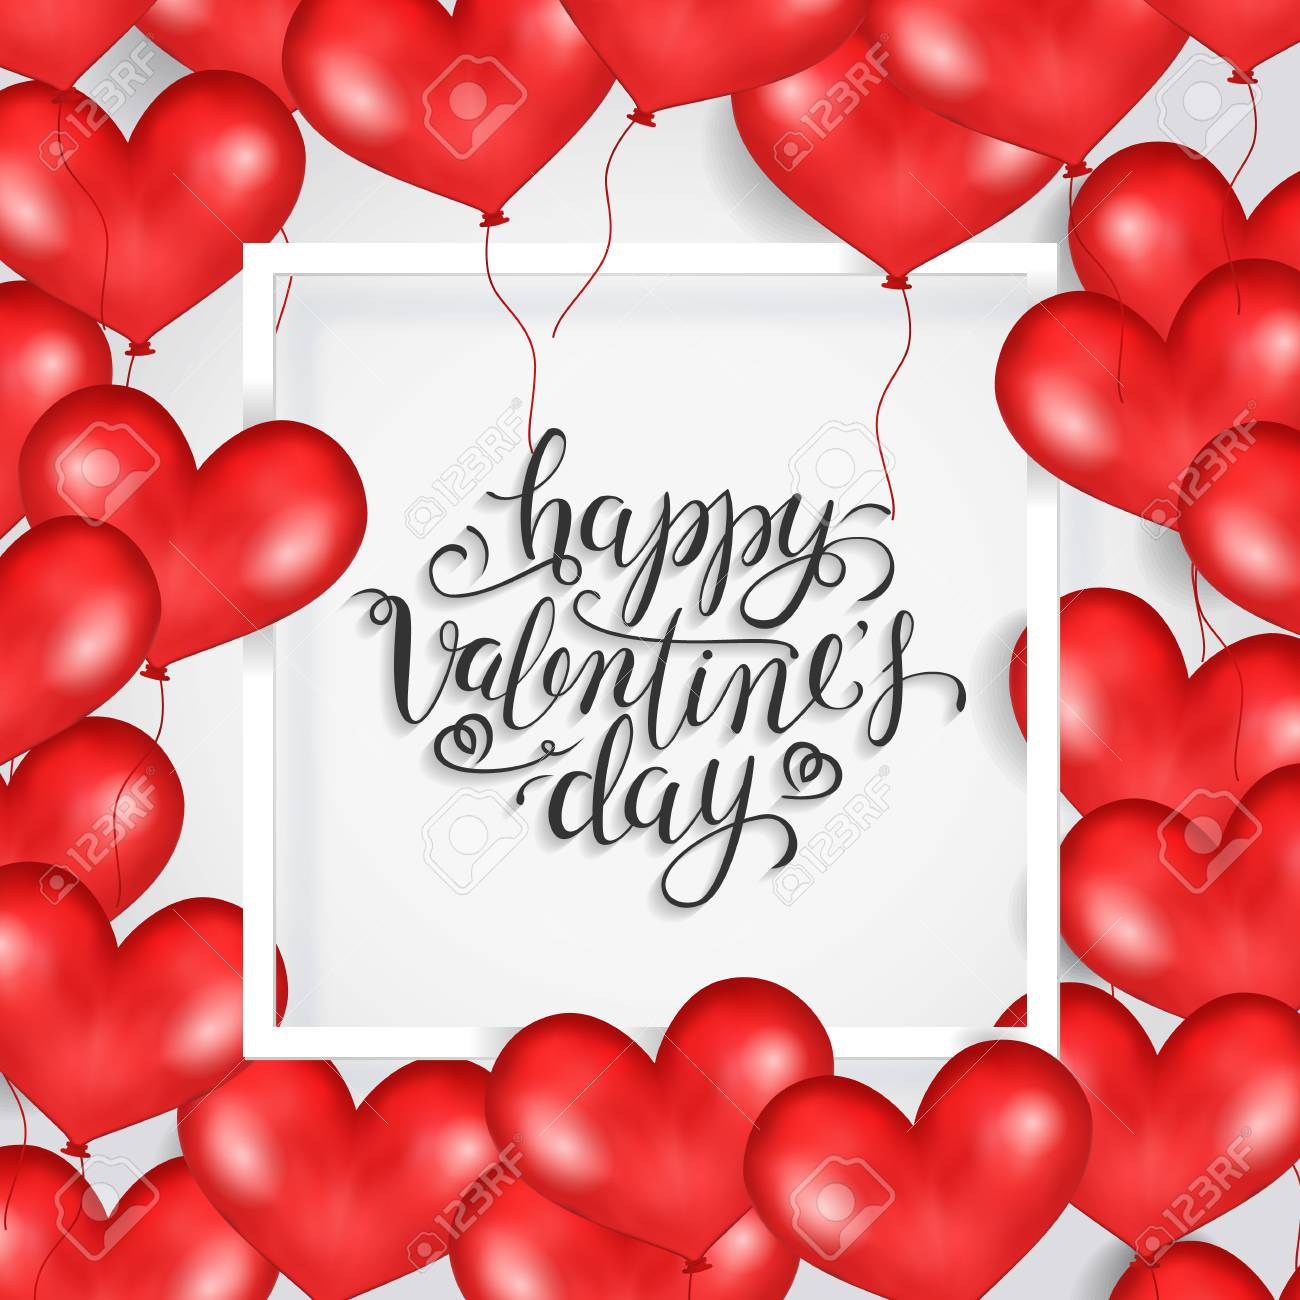 Happy Valentine S Day White Frame Red Heart Balloons White